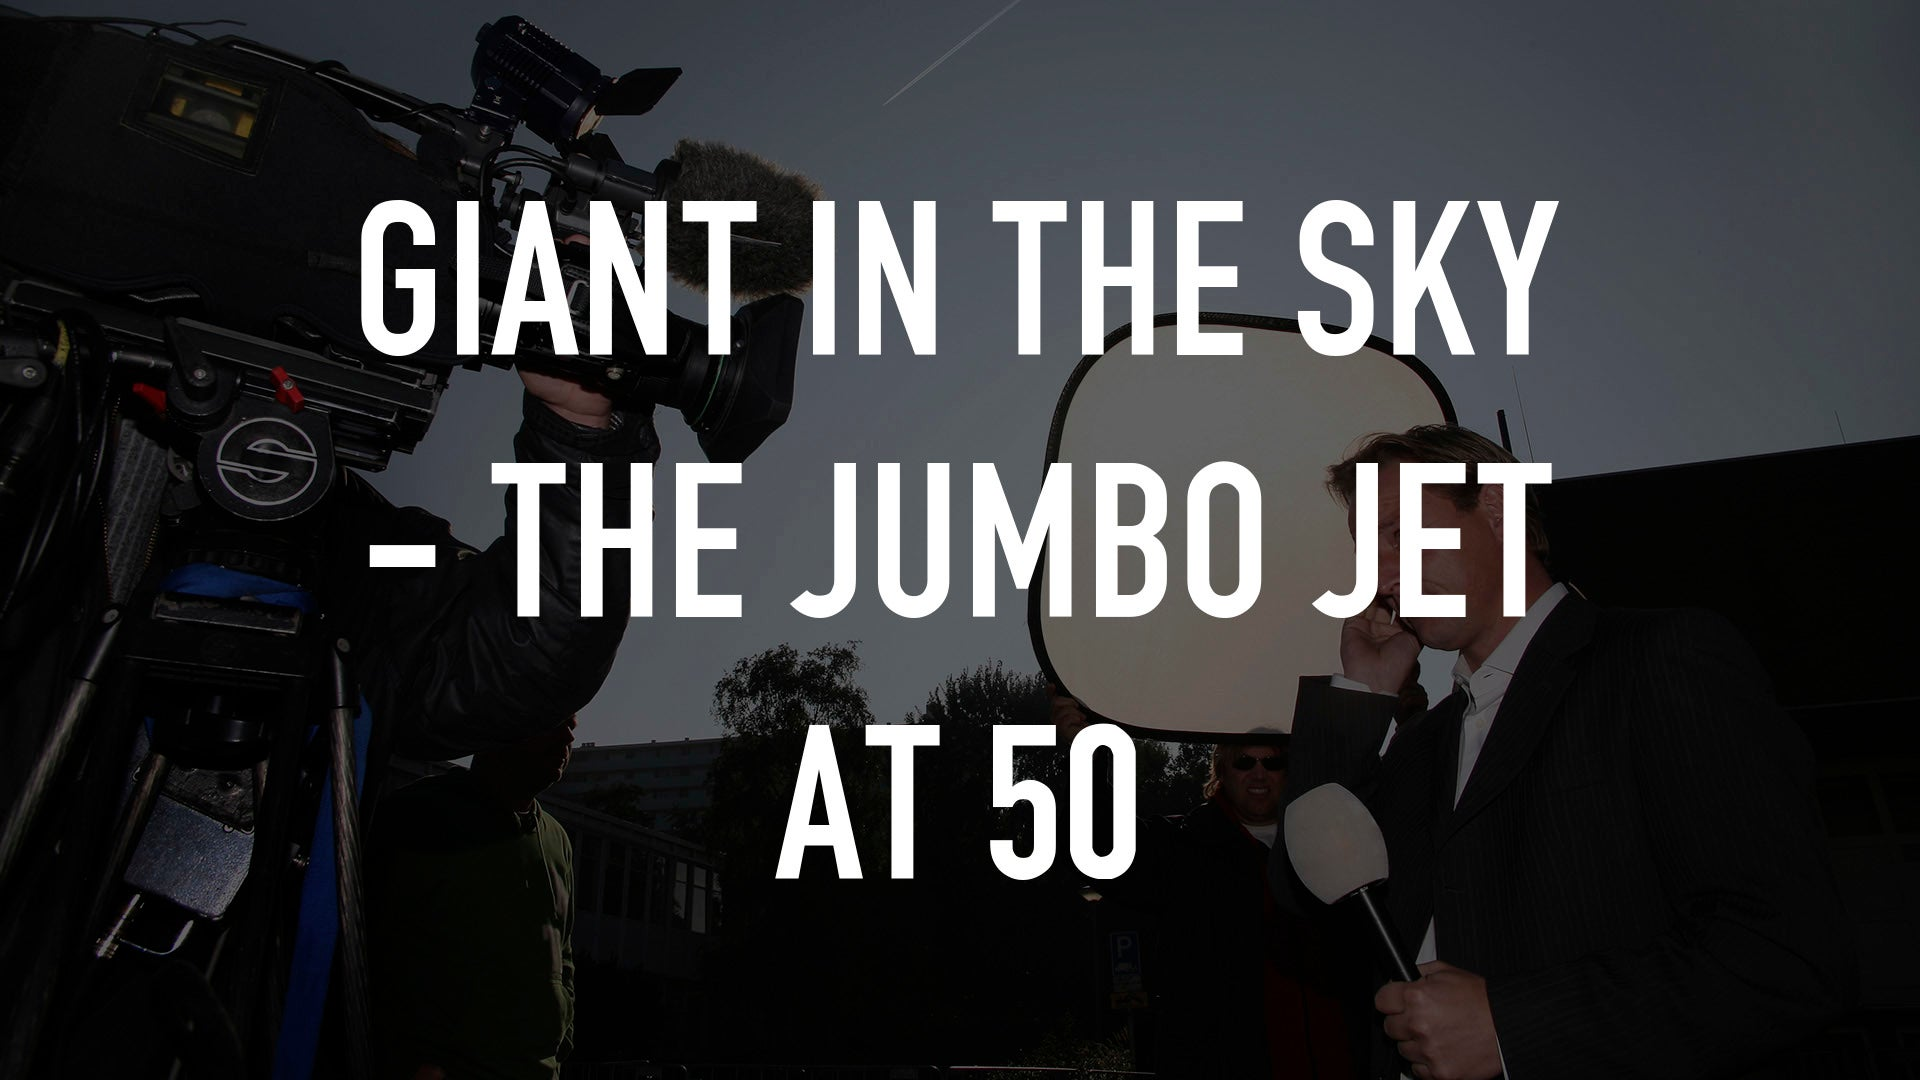 Giant in the Sky - The Jumbo Jet at 50